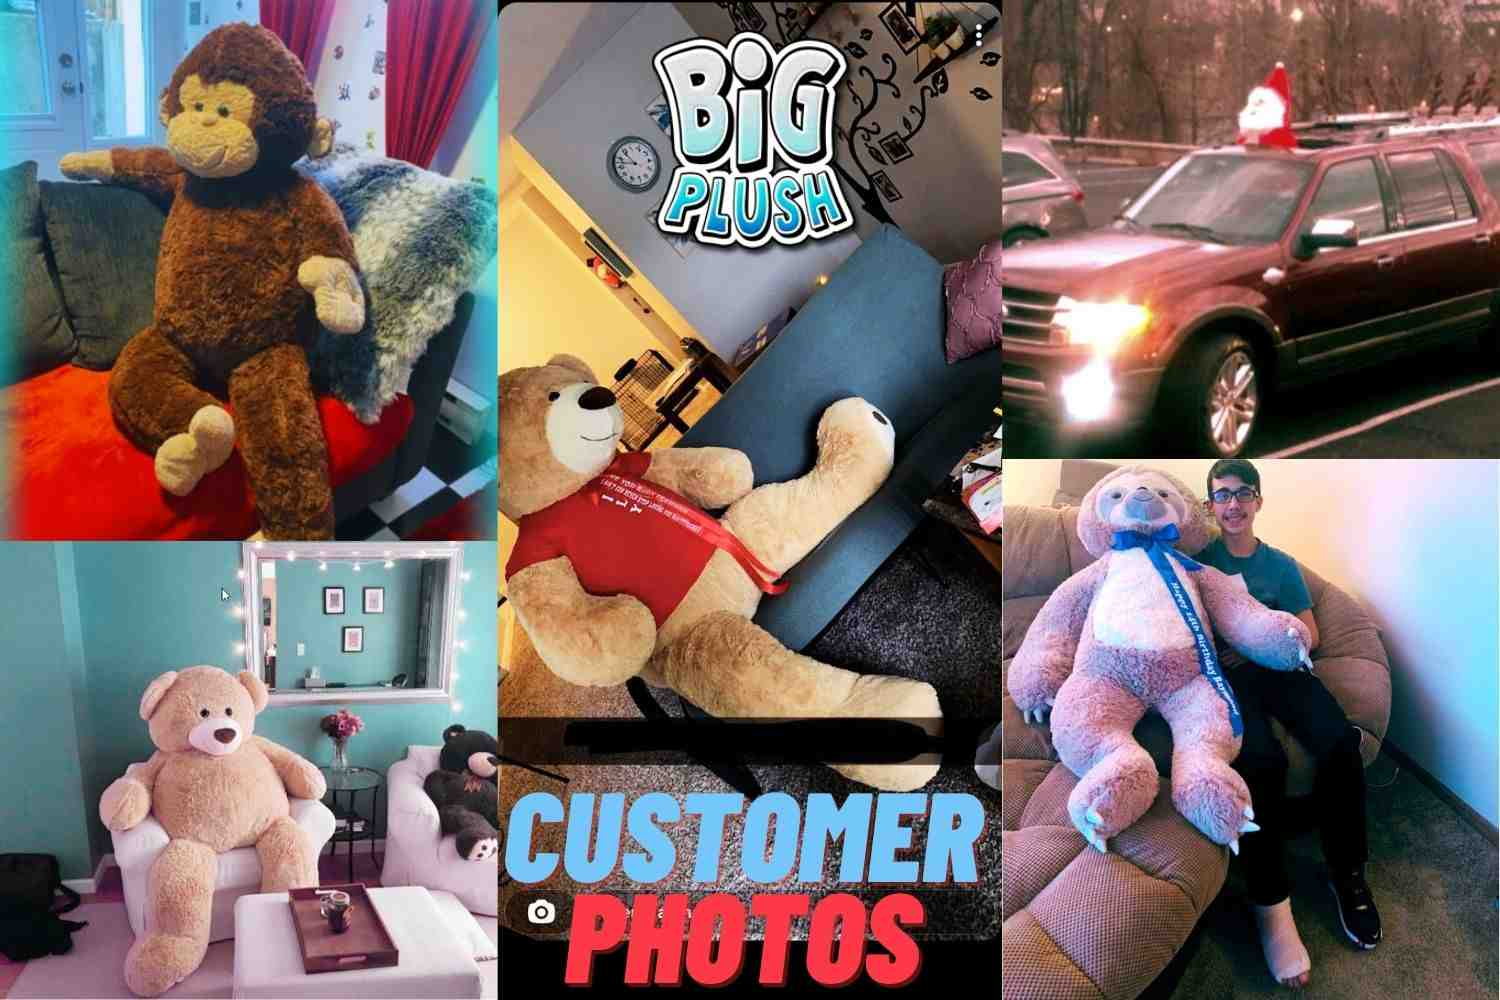 Big Plush Customer Reviews and Customer Photos showing Big Plush products in their life